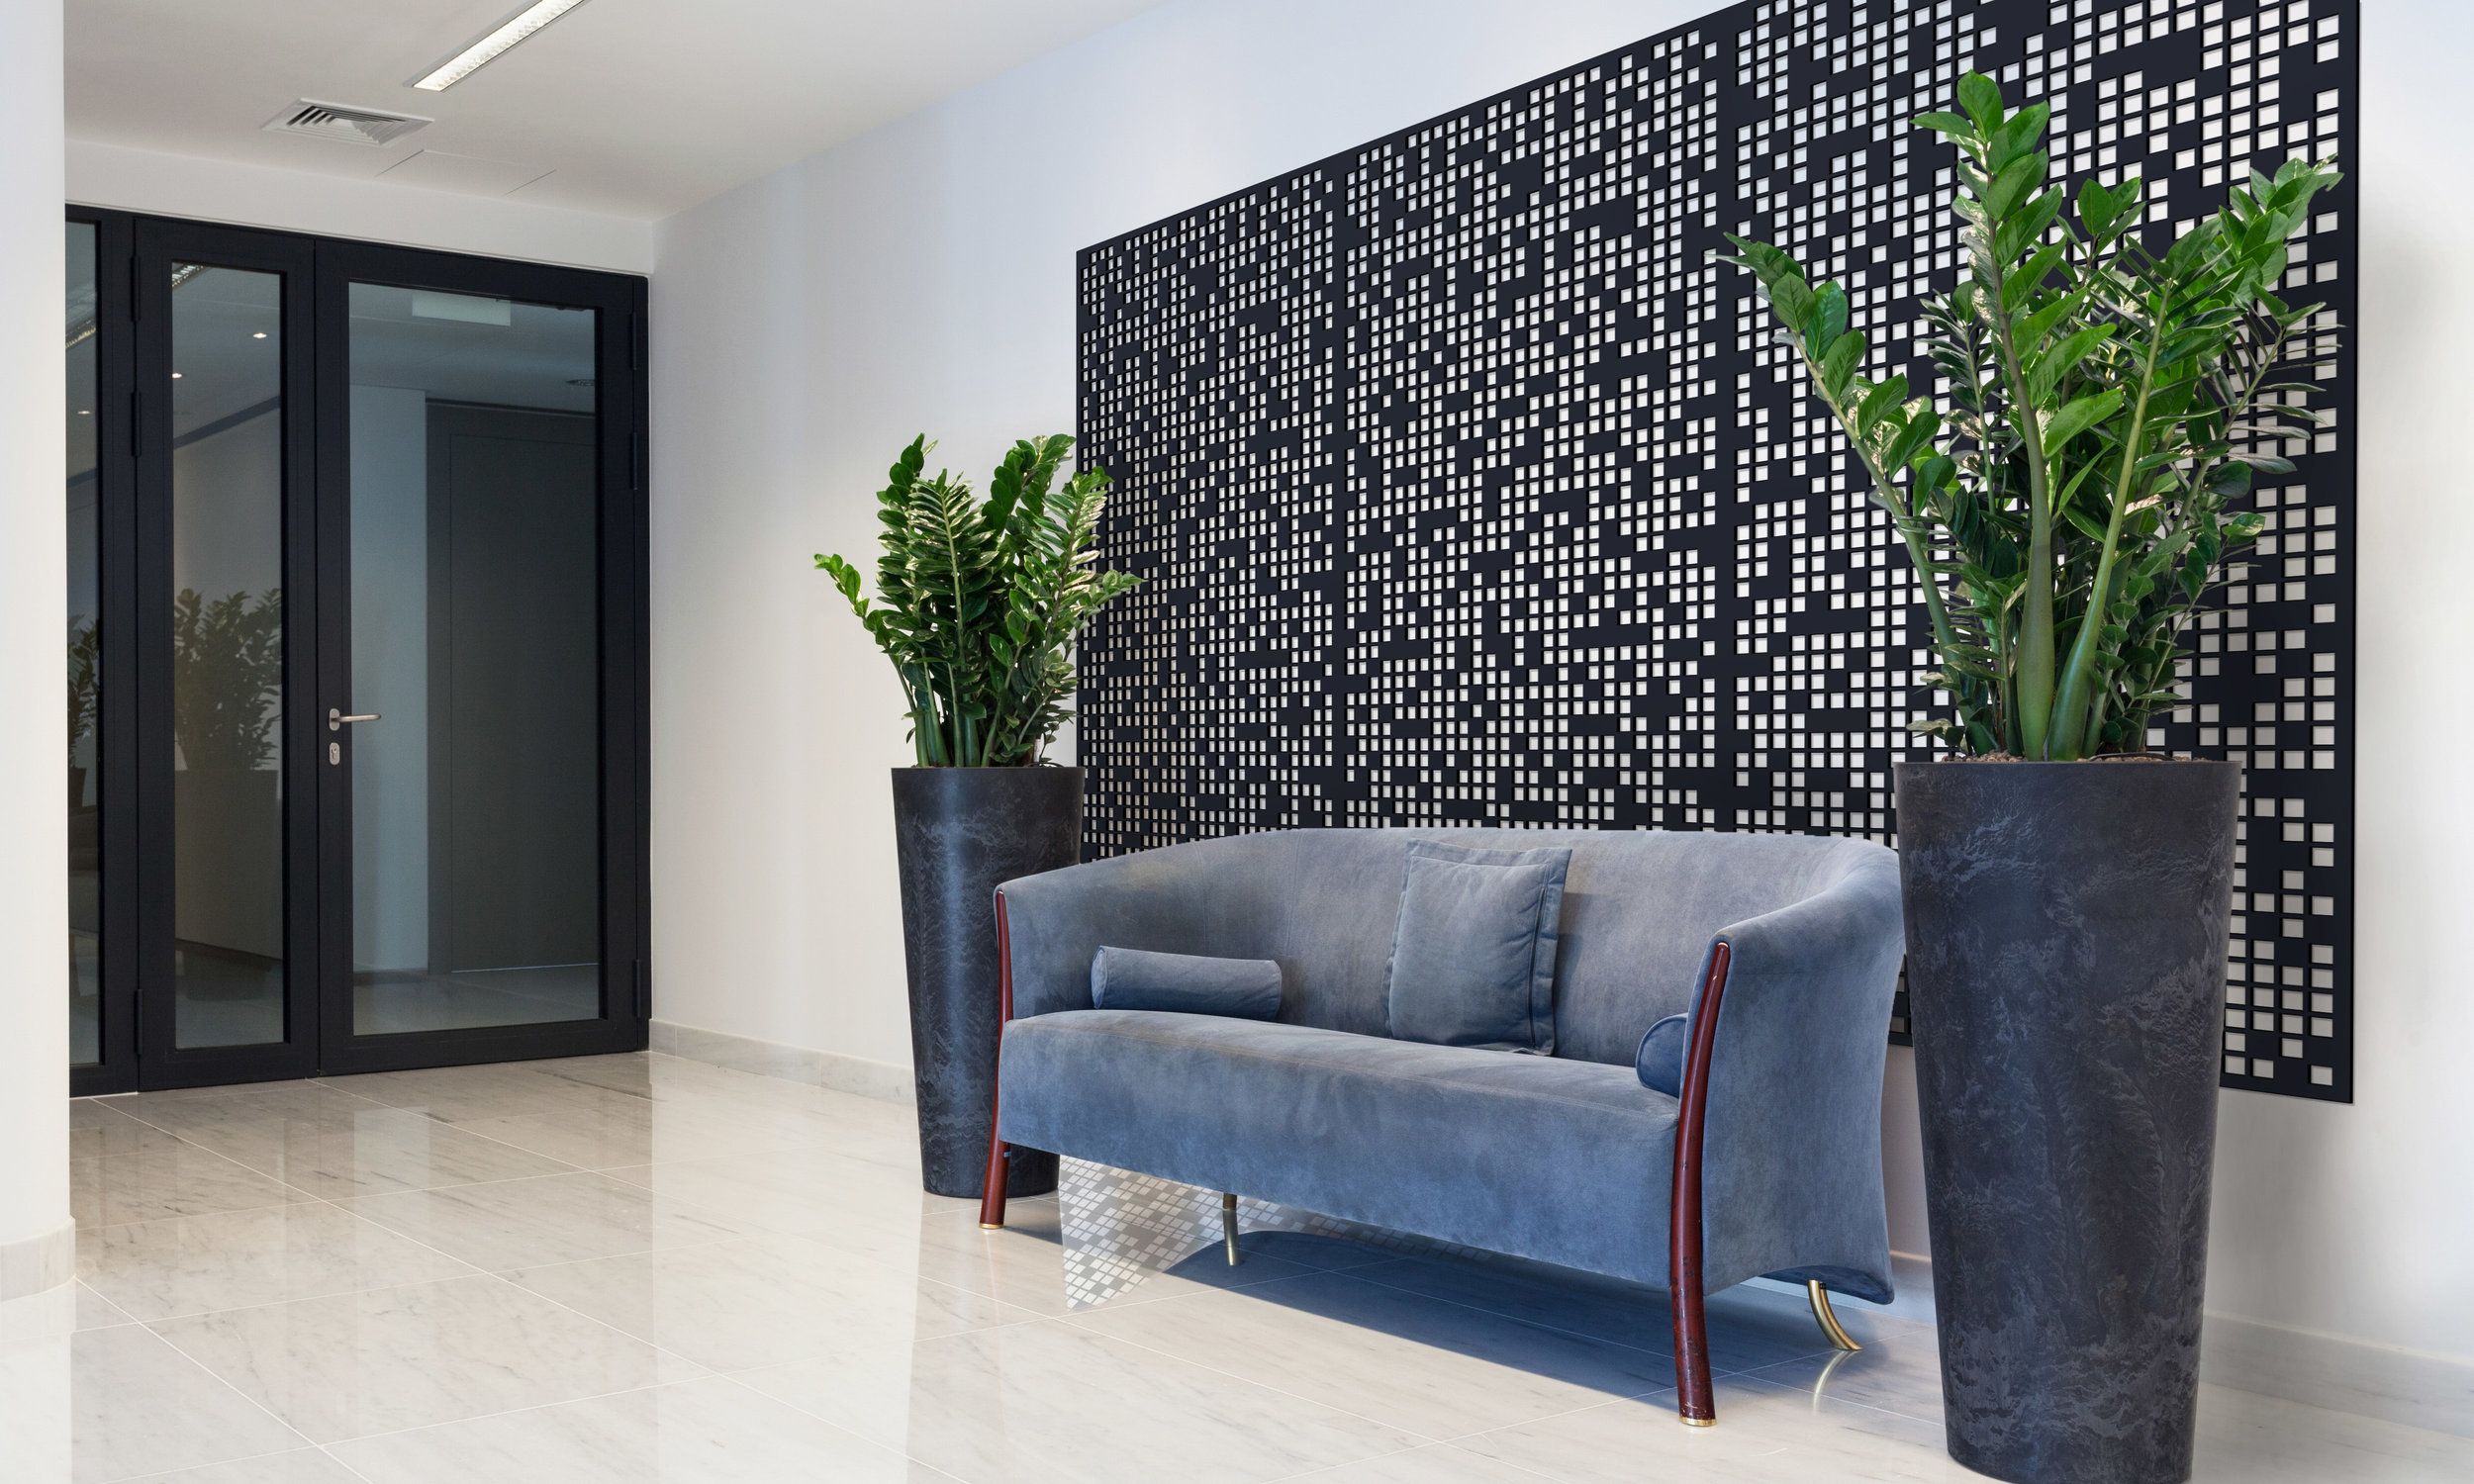 Installation Rendering B   Pixel decorative office wall panel - painted